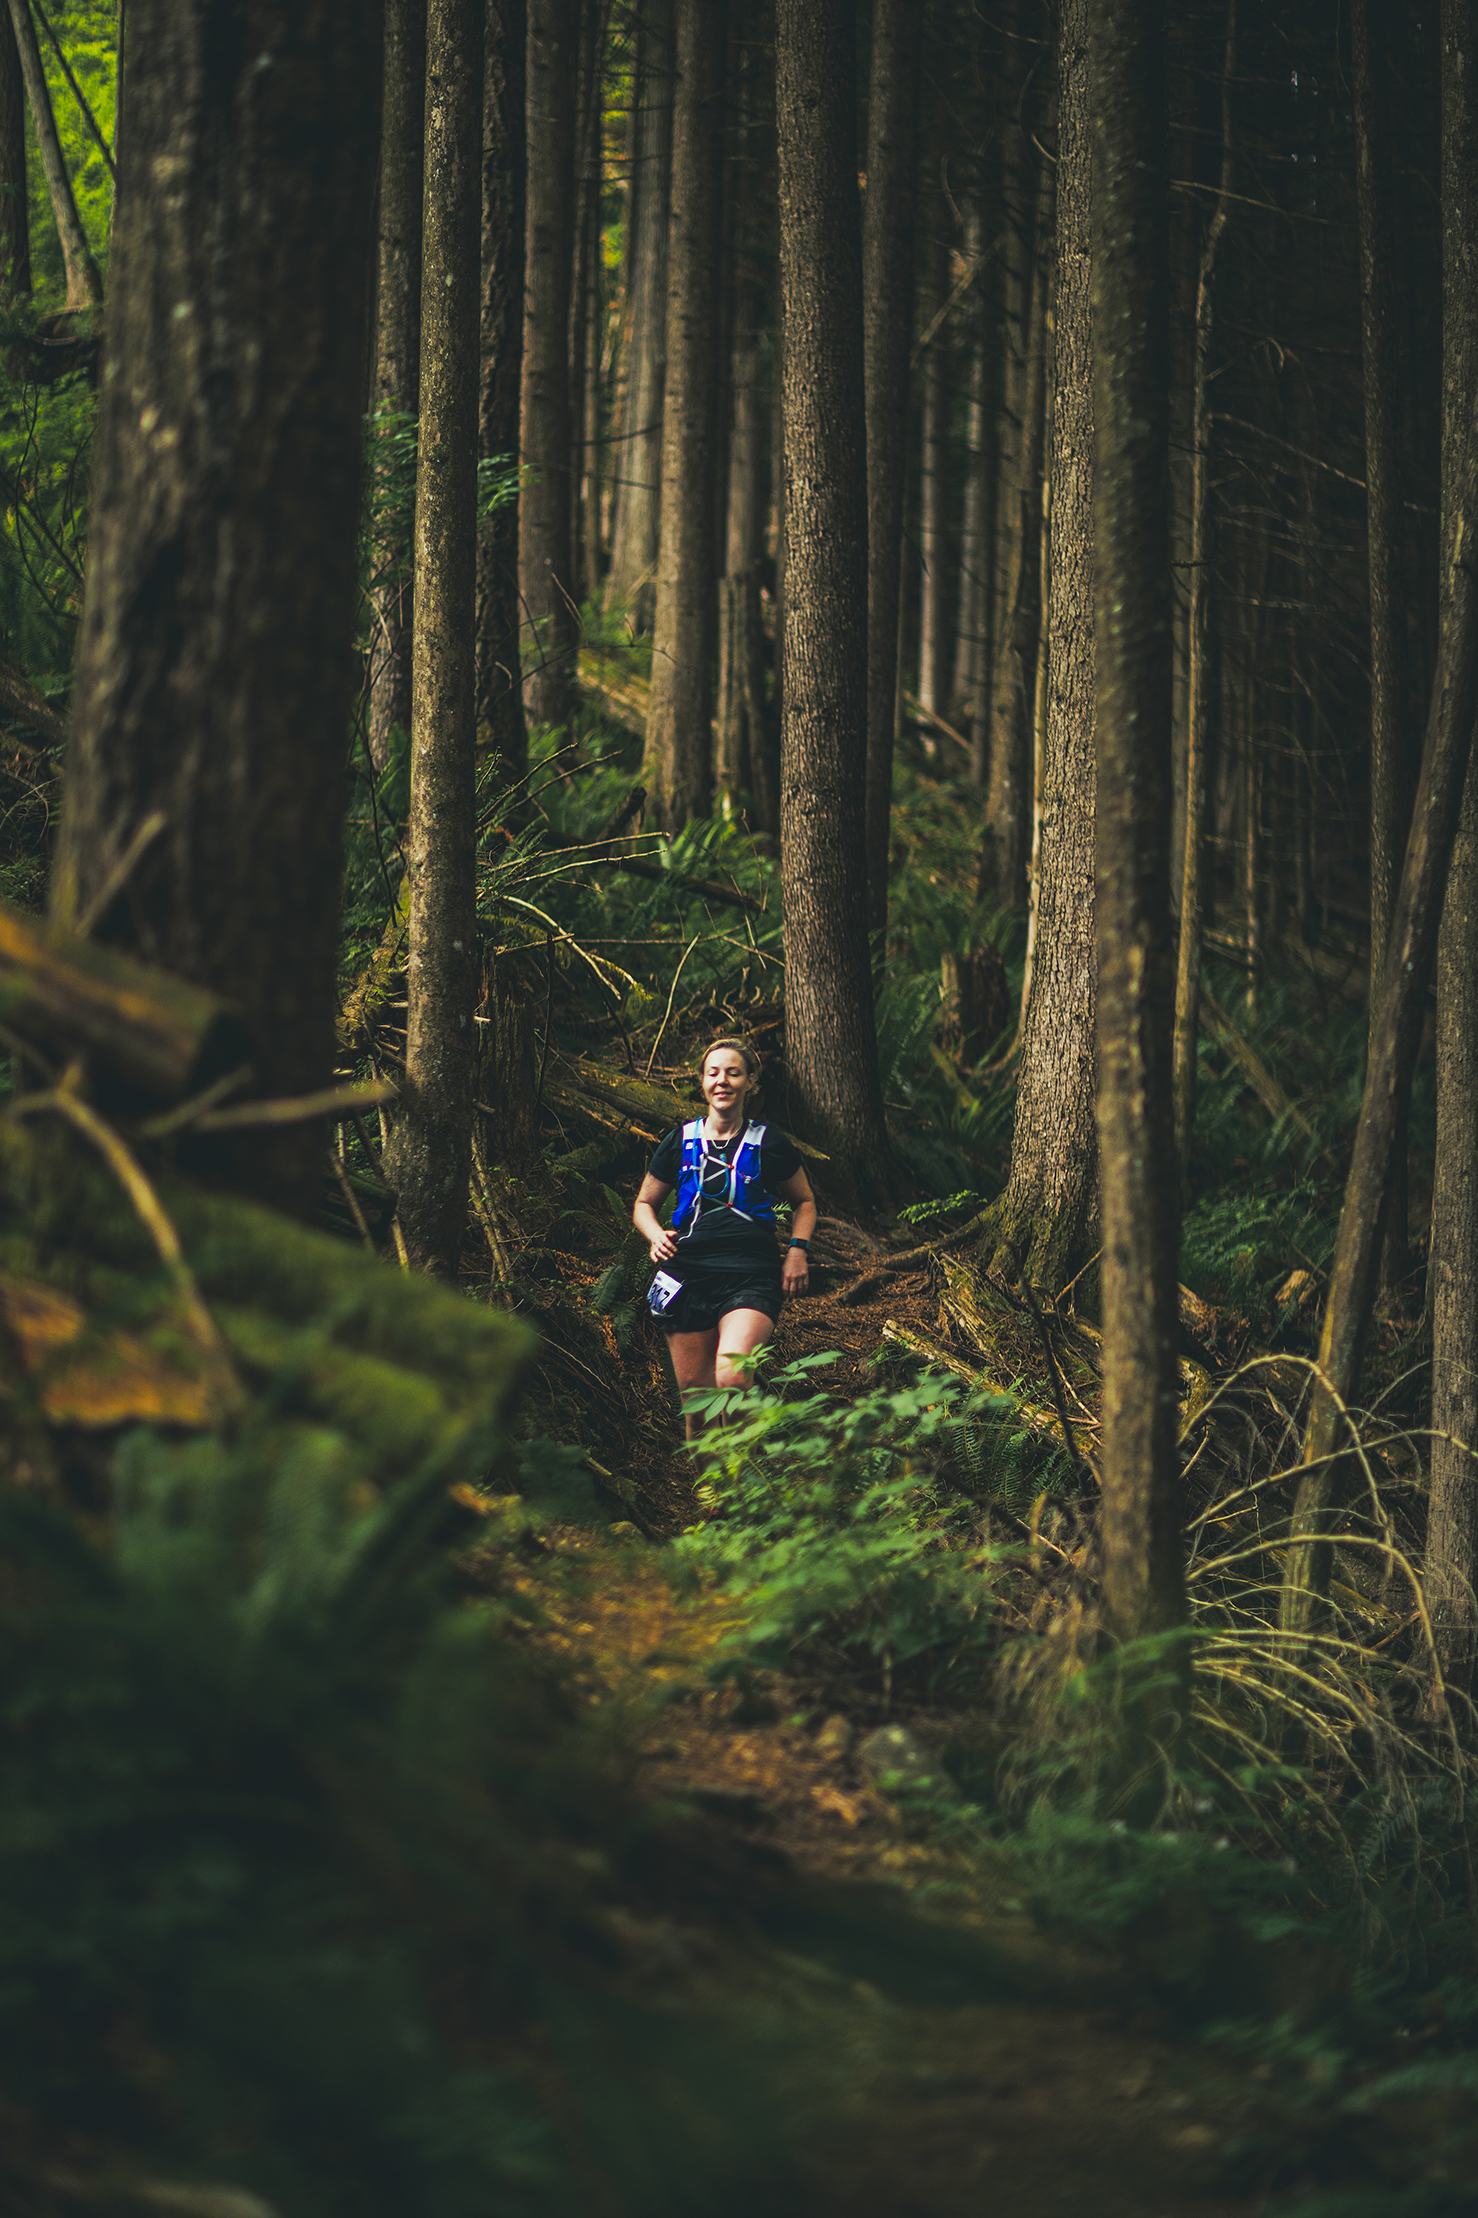 Fraser Valley Trail Races - Bear Mountain - IMG2_2369 by  Brice Ferre Studio - Vancouver Portrait Adventure and Athlete Photographer.jpg